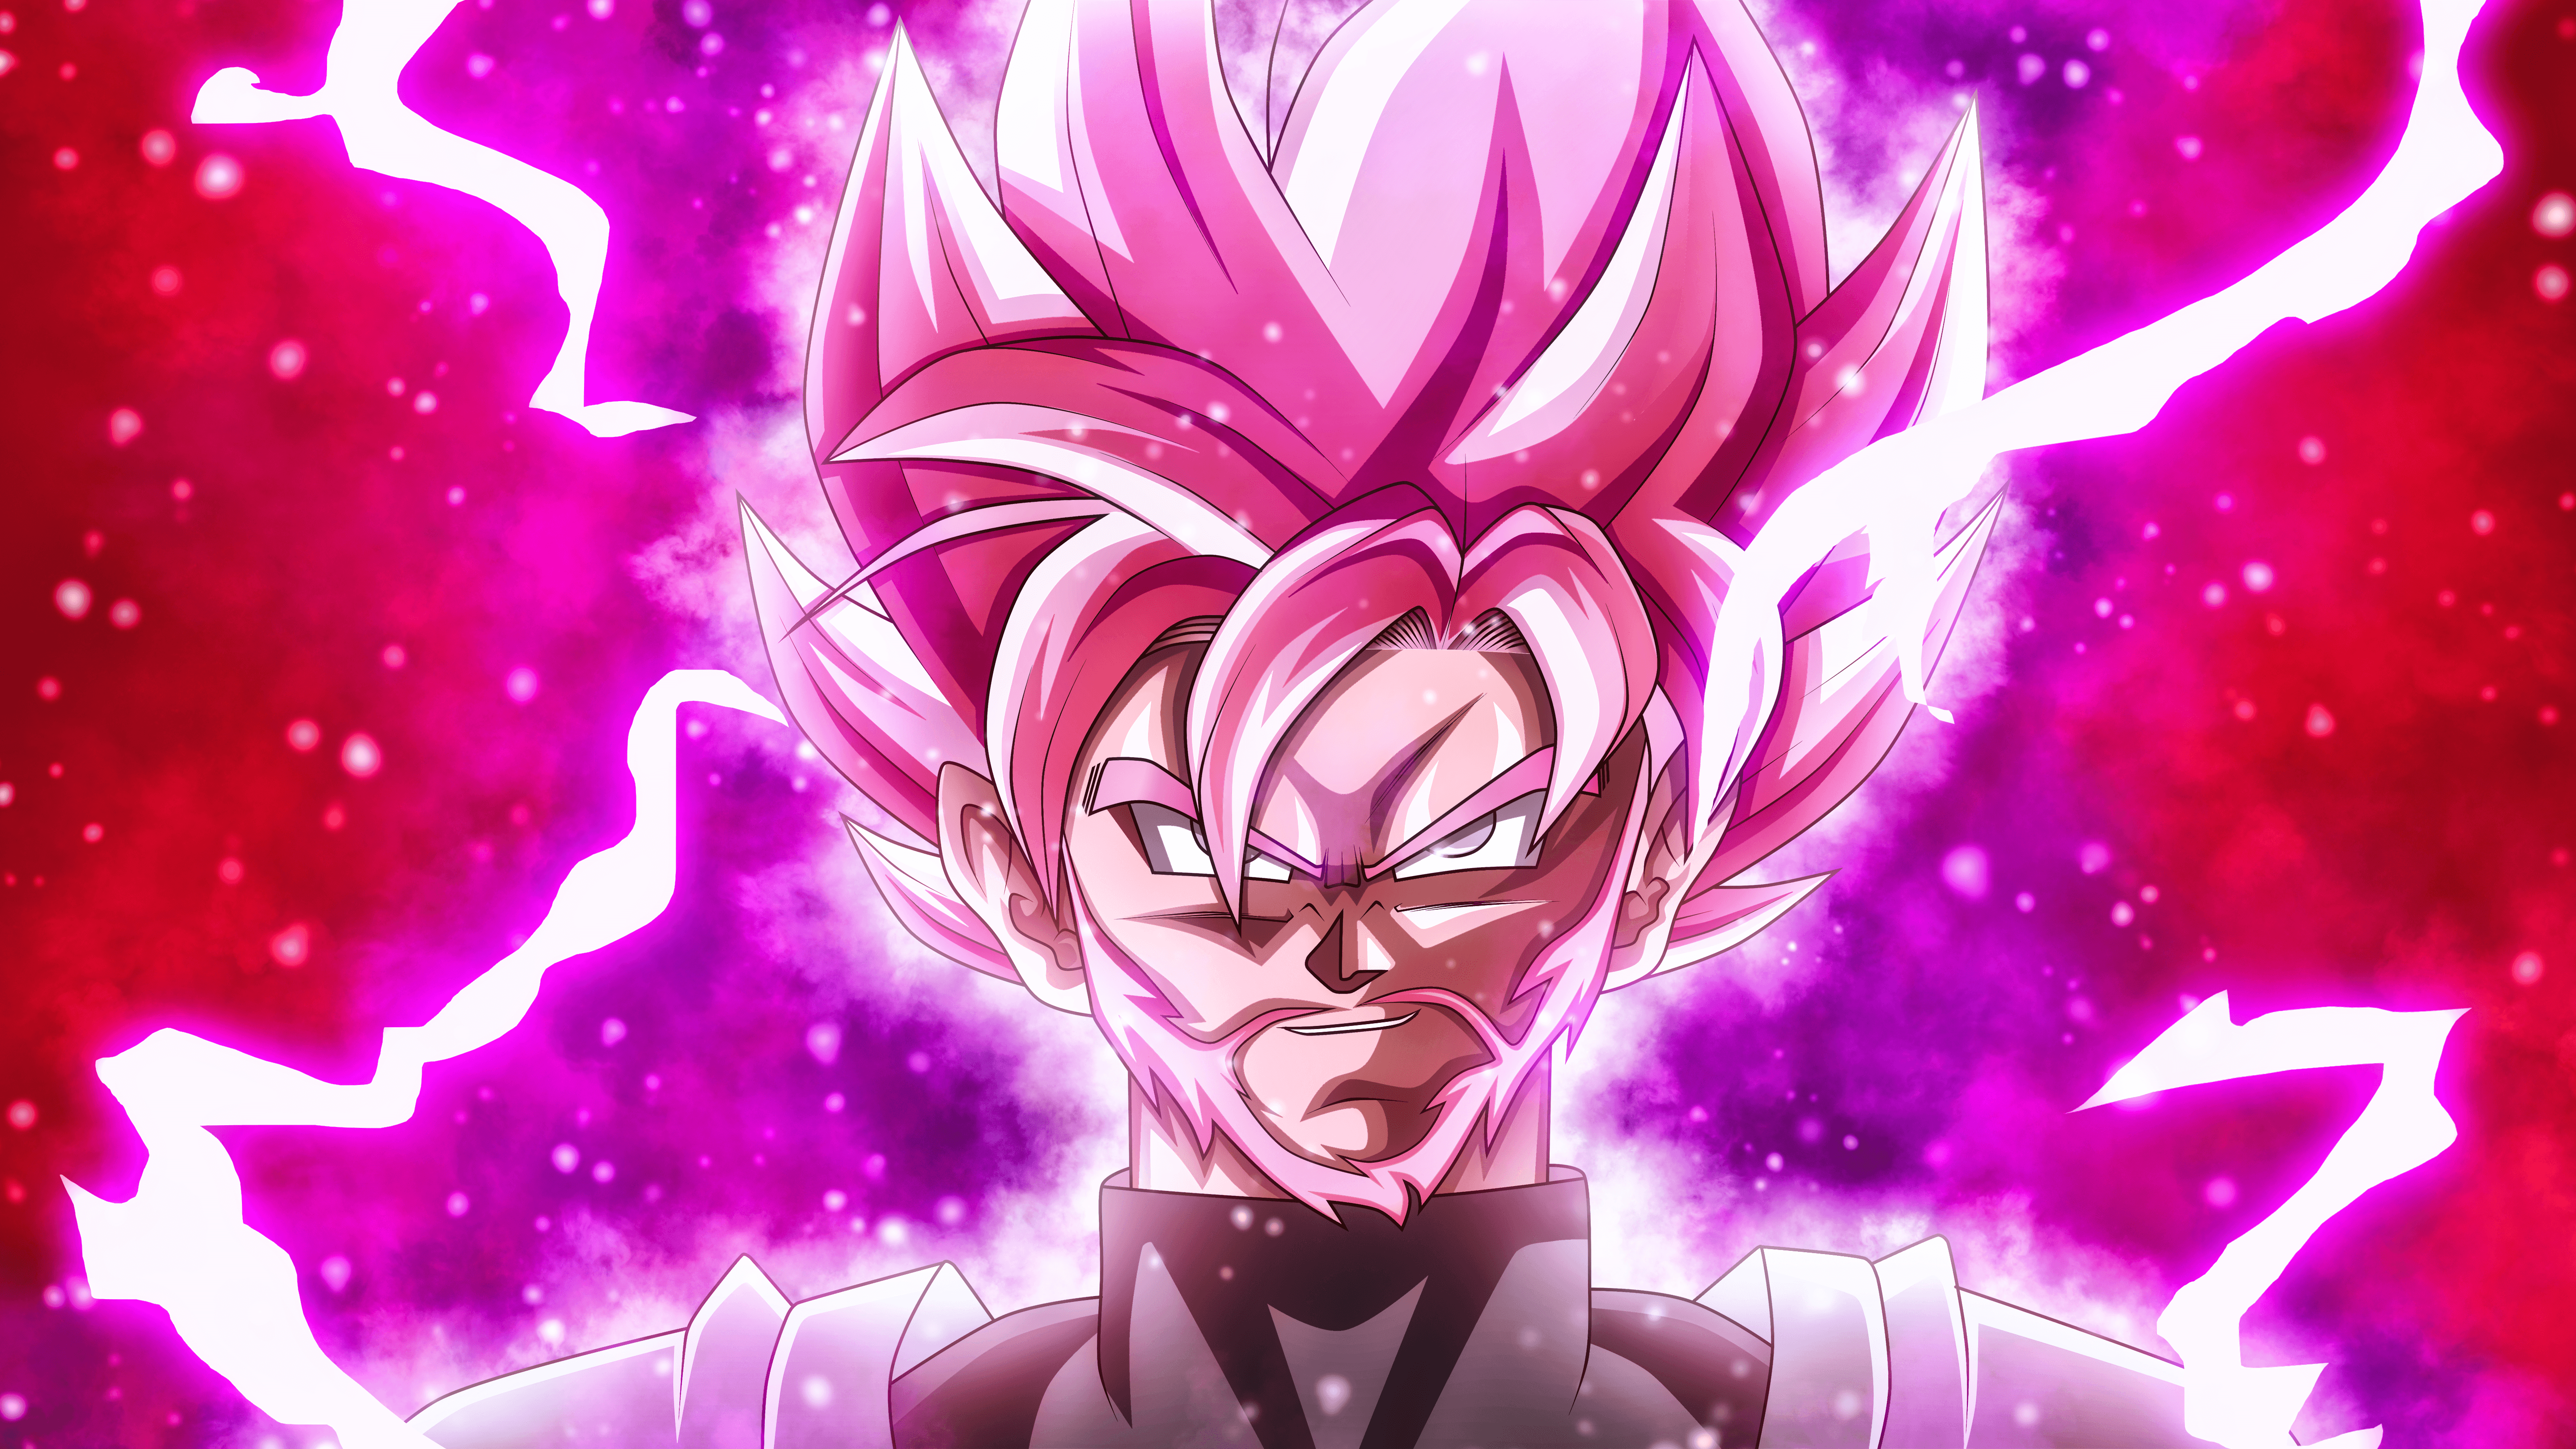 Goku Black Wallpaper Hd Posted By Zoey Anderson